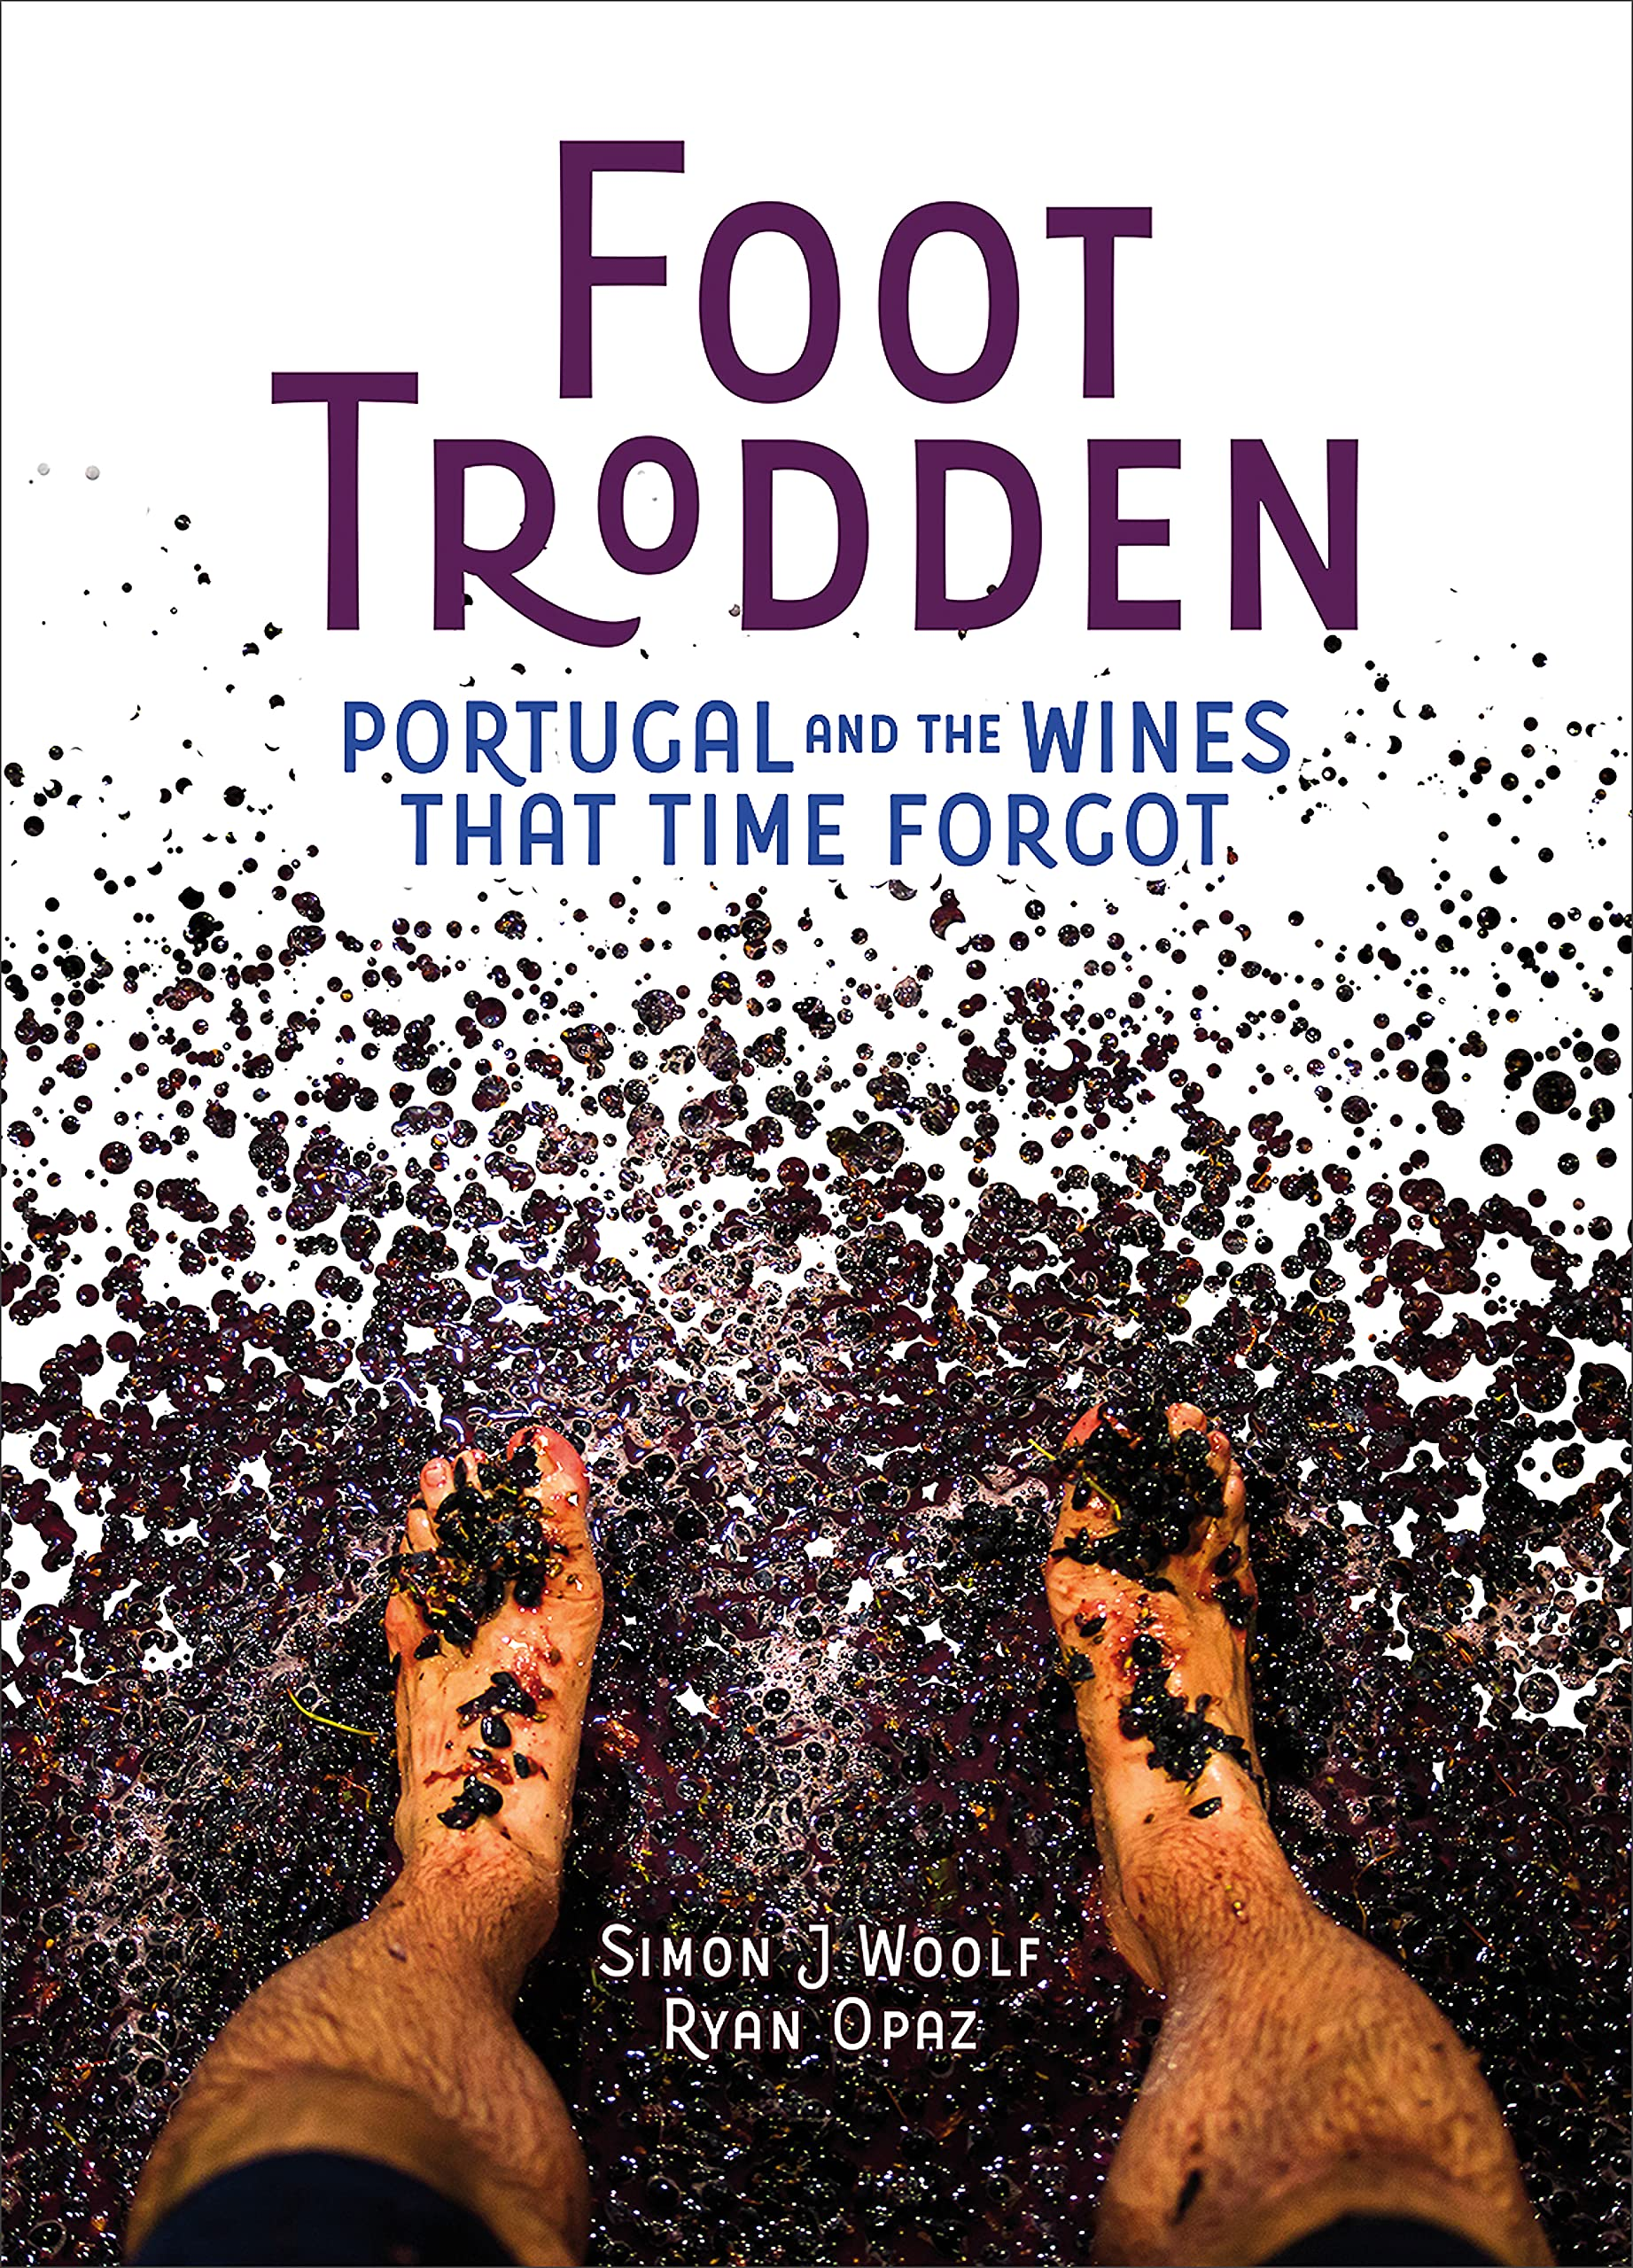 Foot Trodden, Portugal and the wines that time forgot